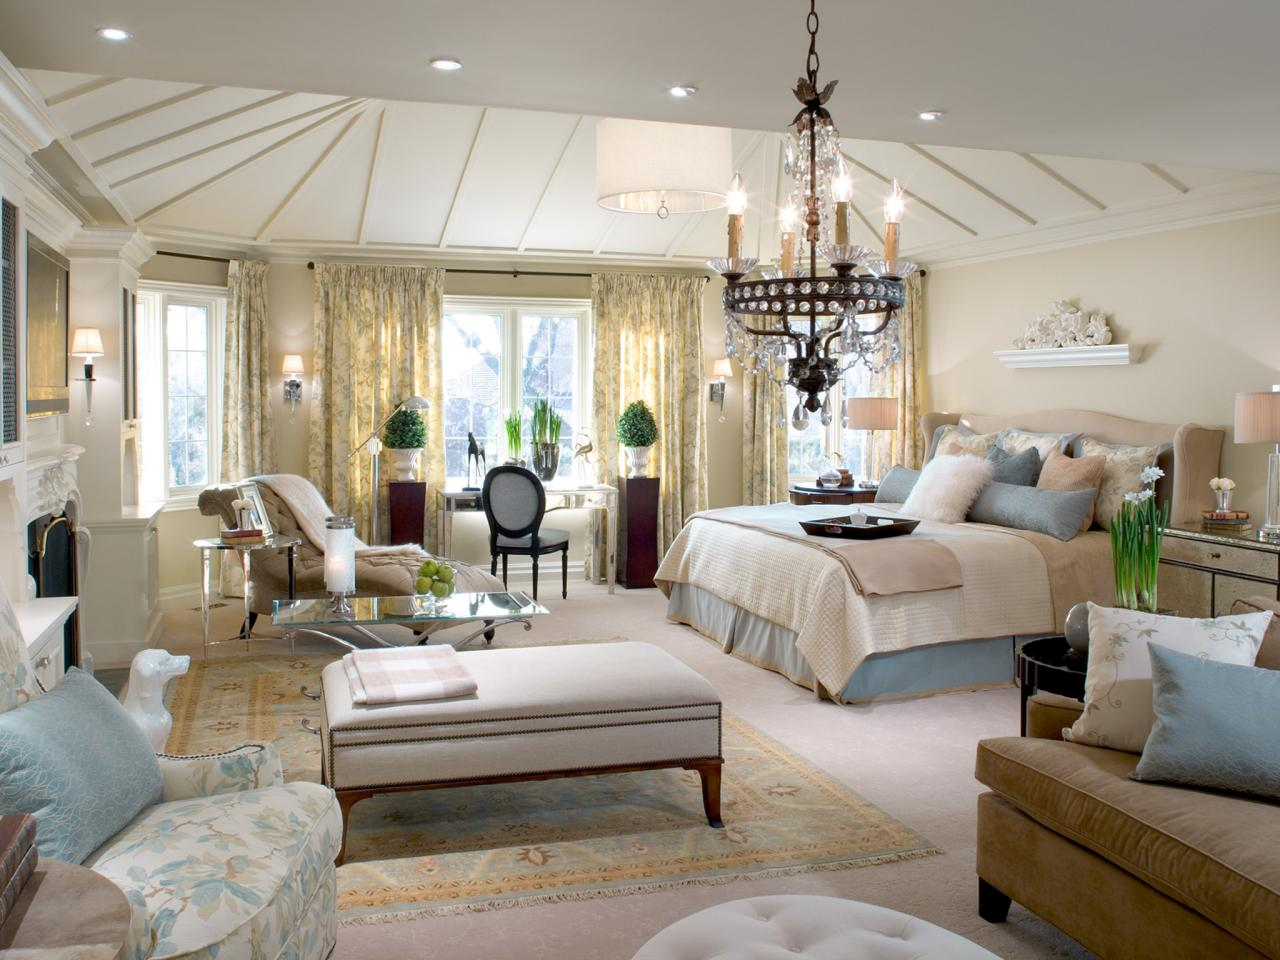 Bedroom carpet ideas pictures options ideas hgtv Master bedroom retreat design ideas